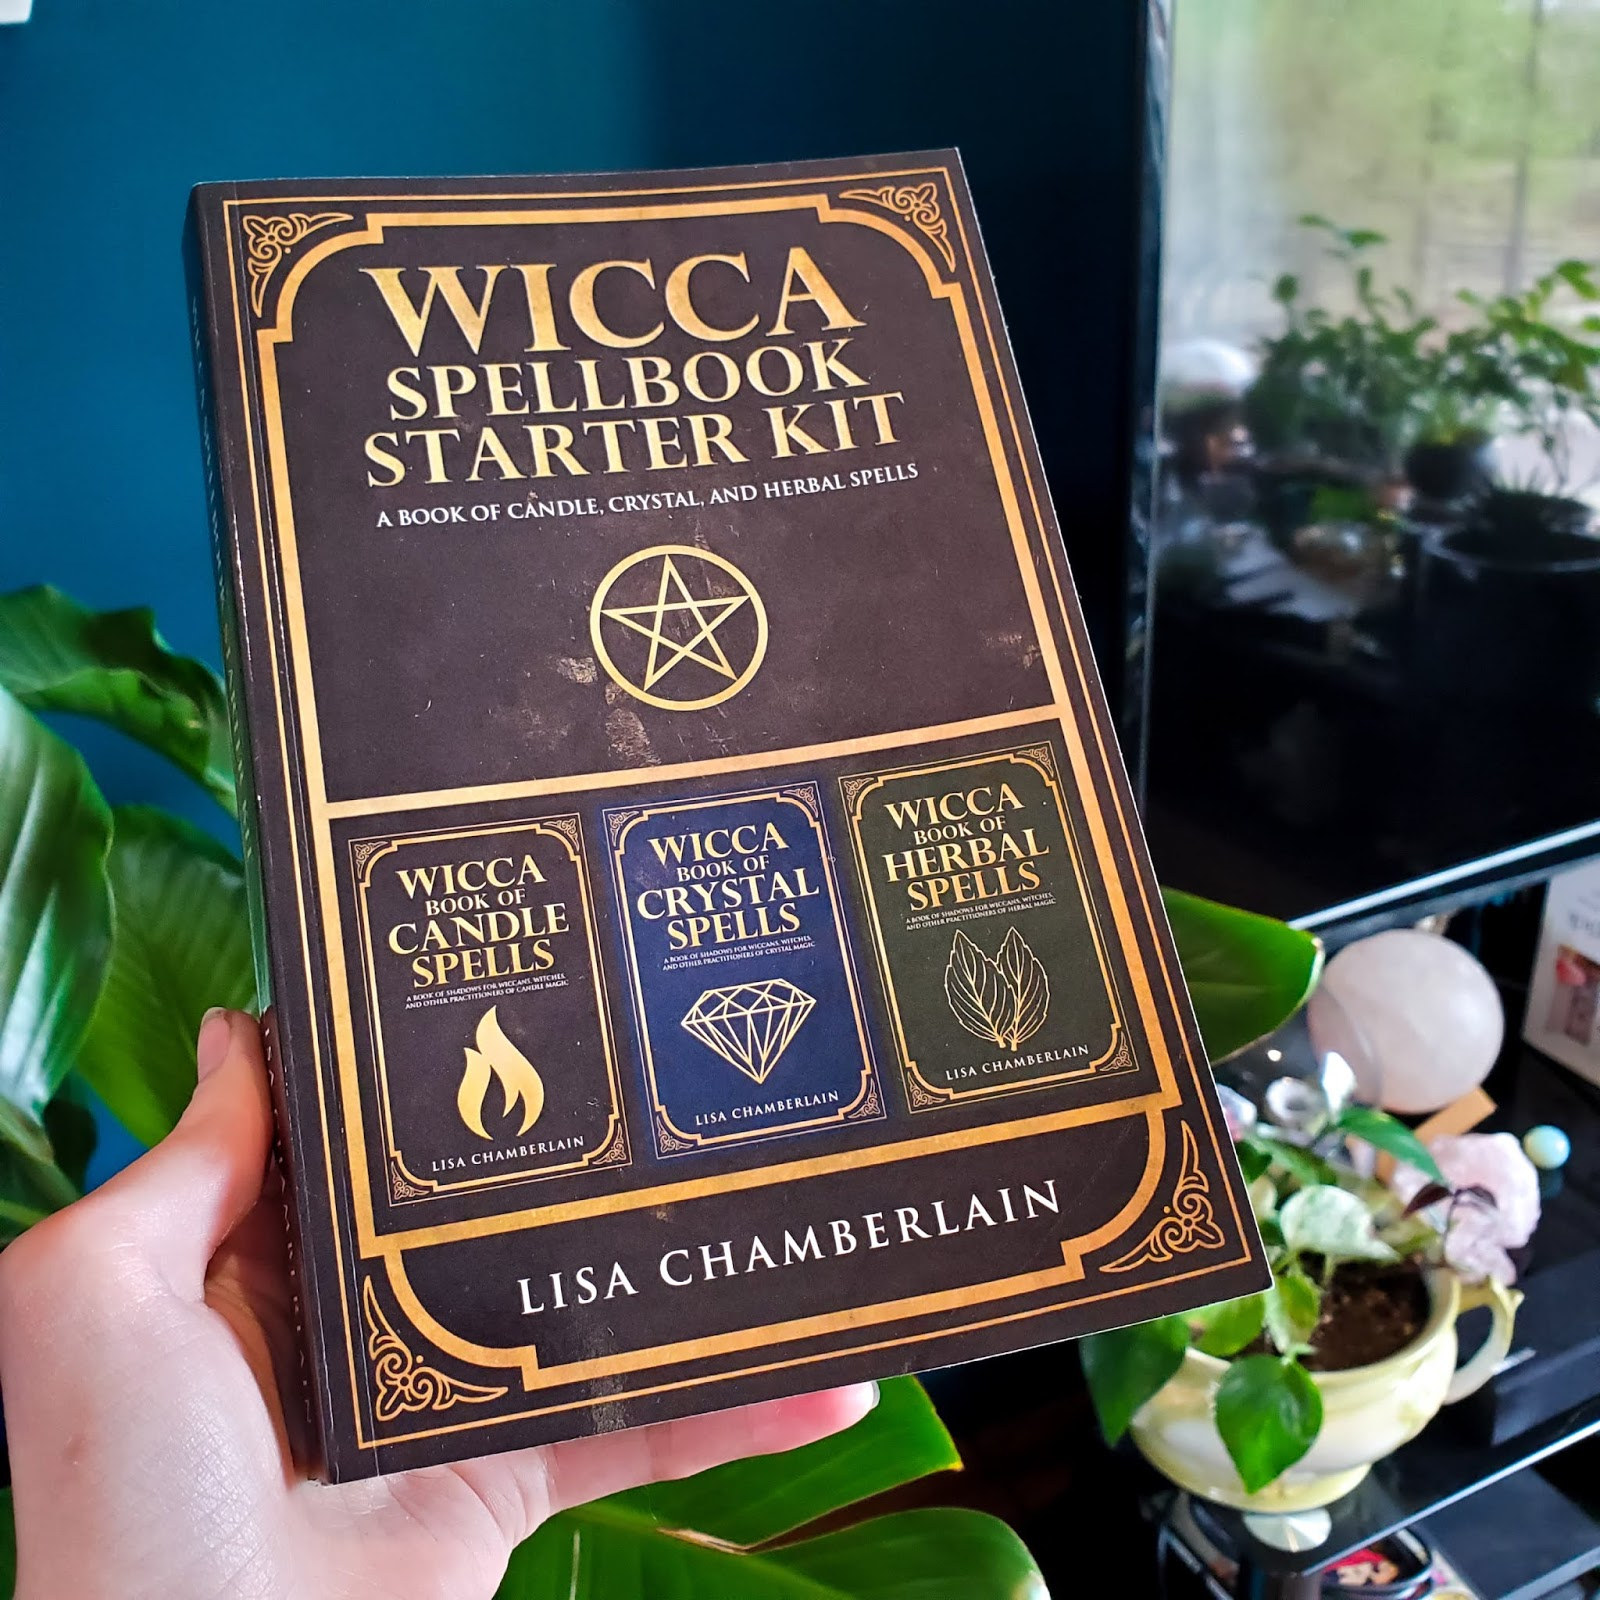 Wicca Spellbook Starter Kit by Lisa Chamberlain